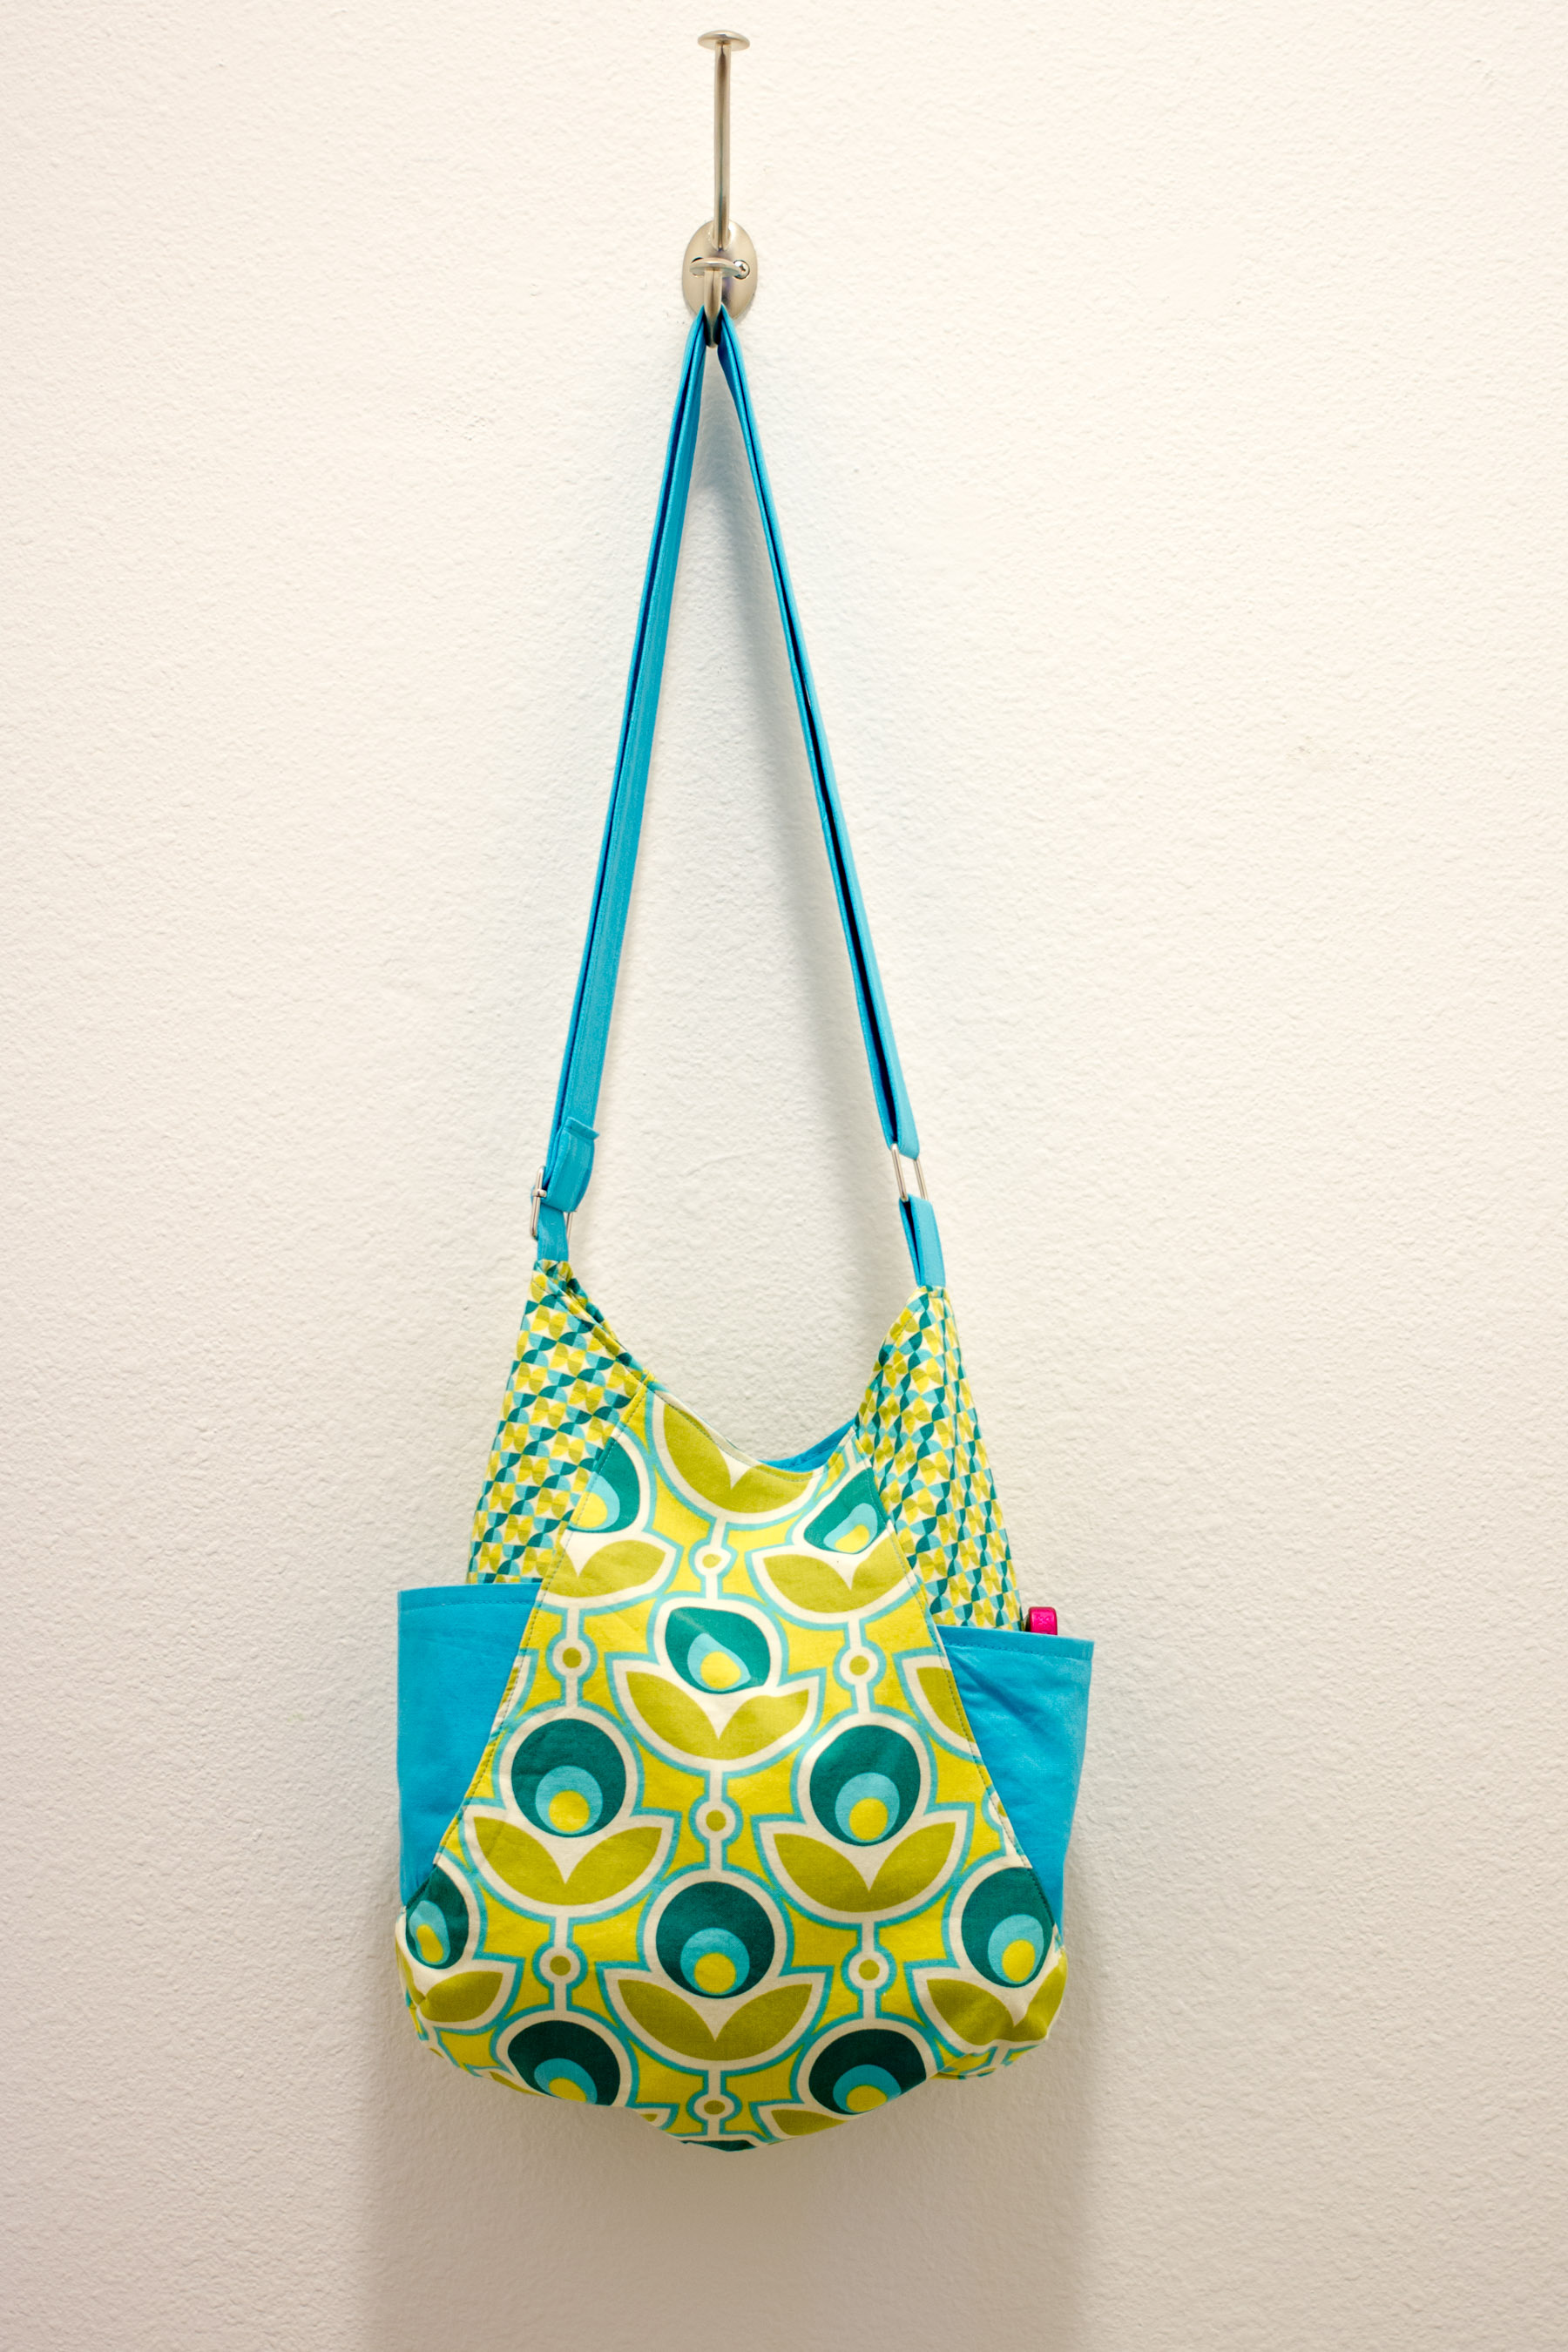 241 Tote for Mom | katili*made | http://katilimade.com